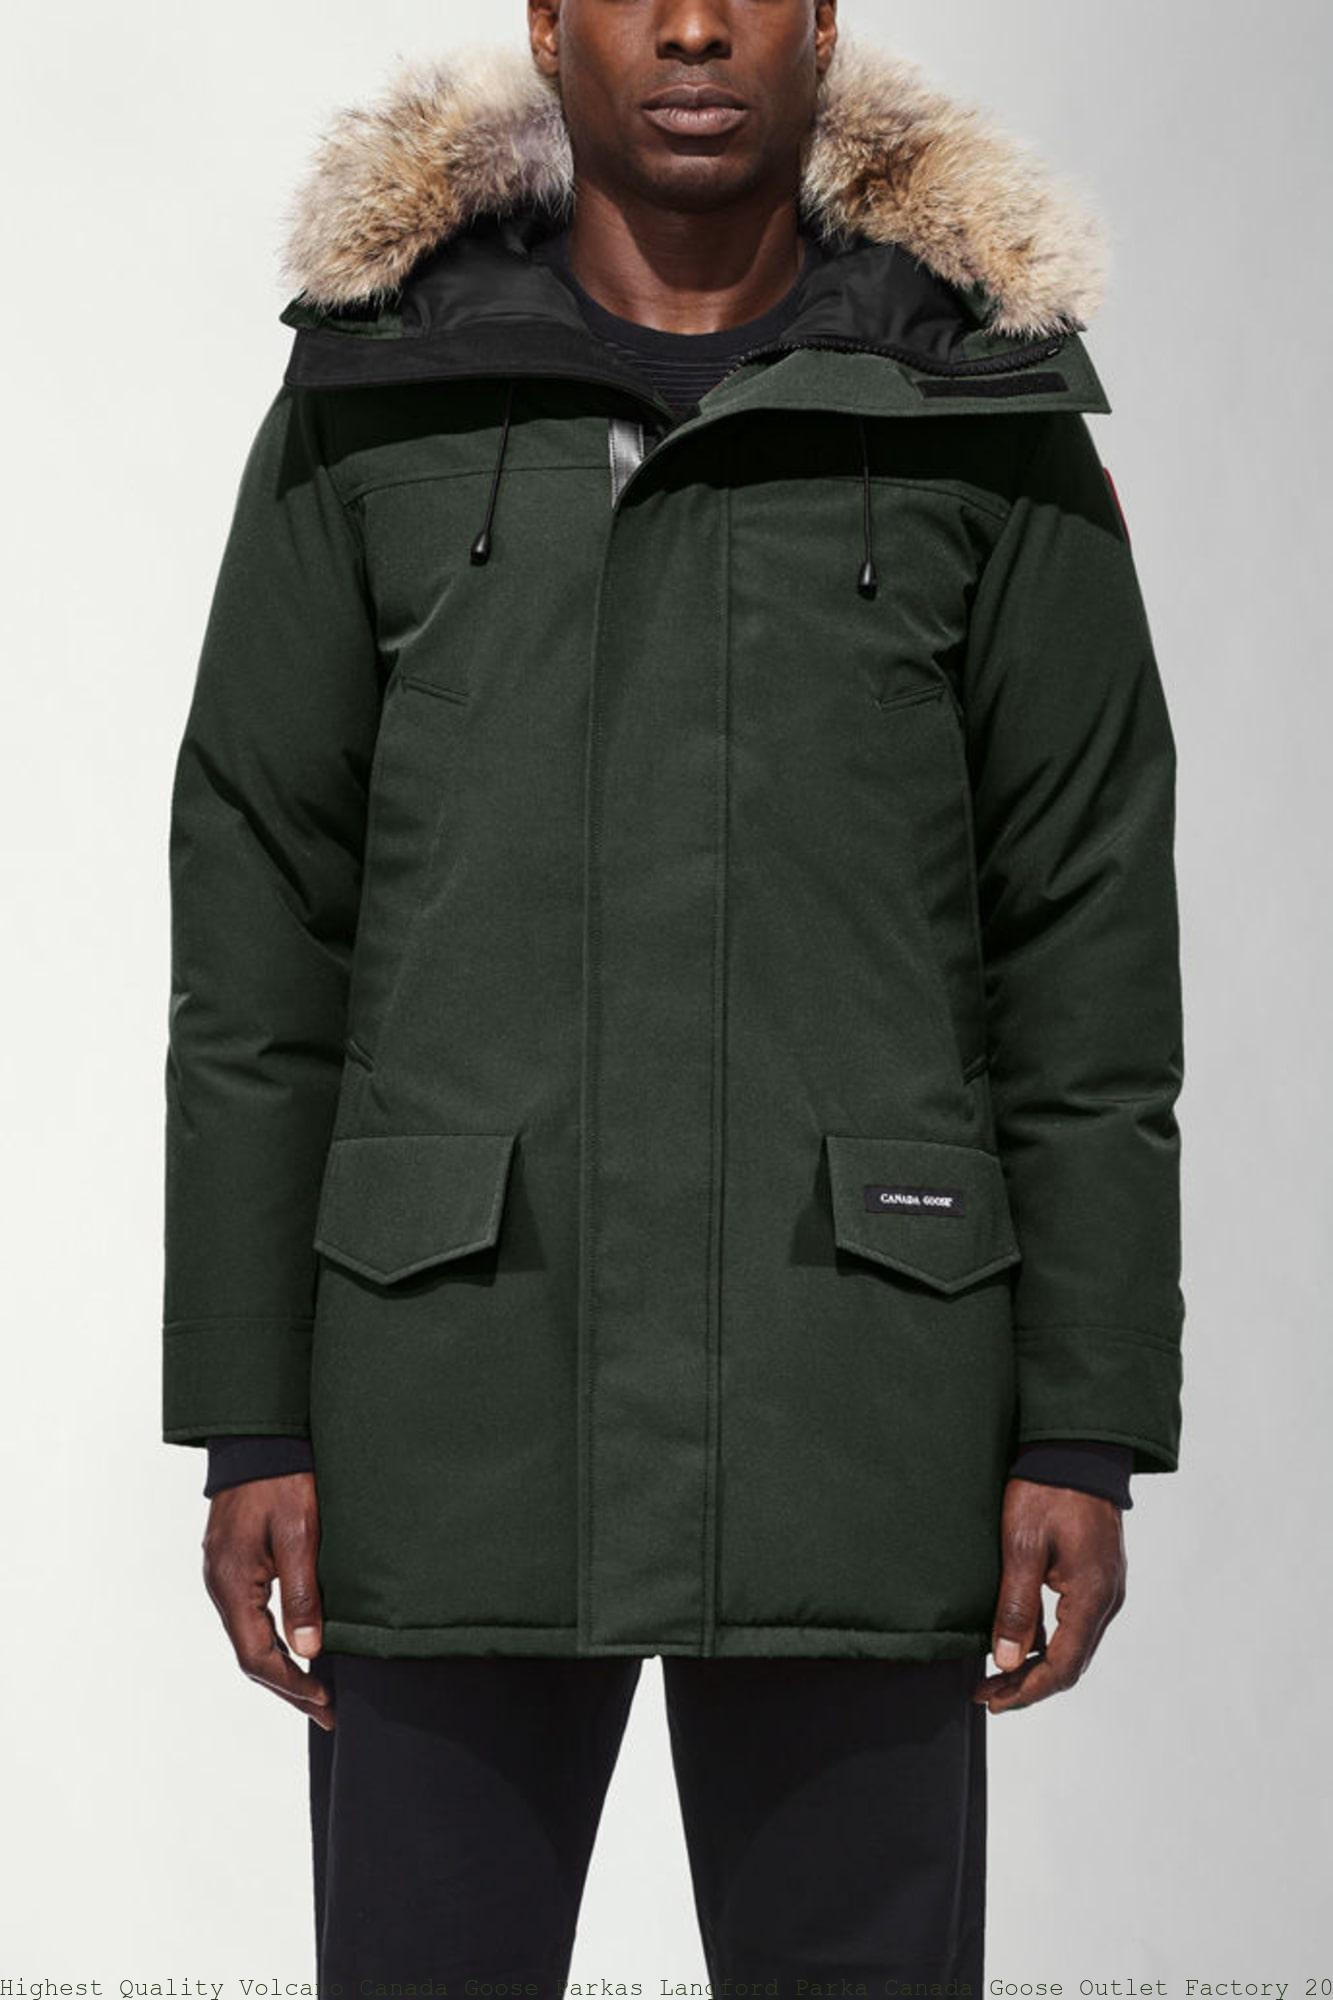 aafb55cd06c Highest Quality Volcano Canada Goose Parkas Langford Parka Canada Goose  Outlet Factory 2062M